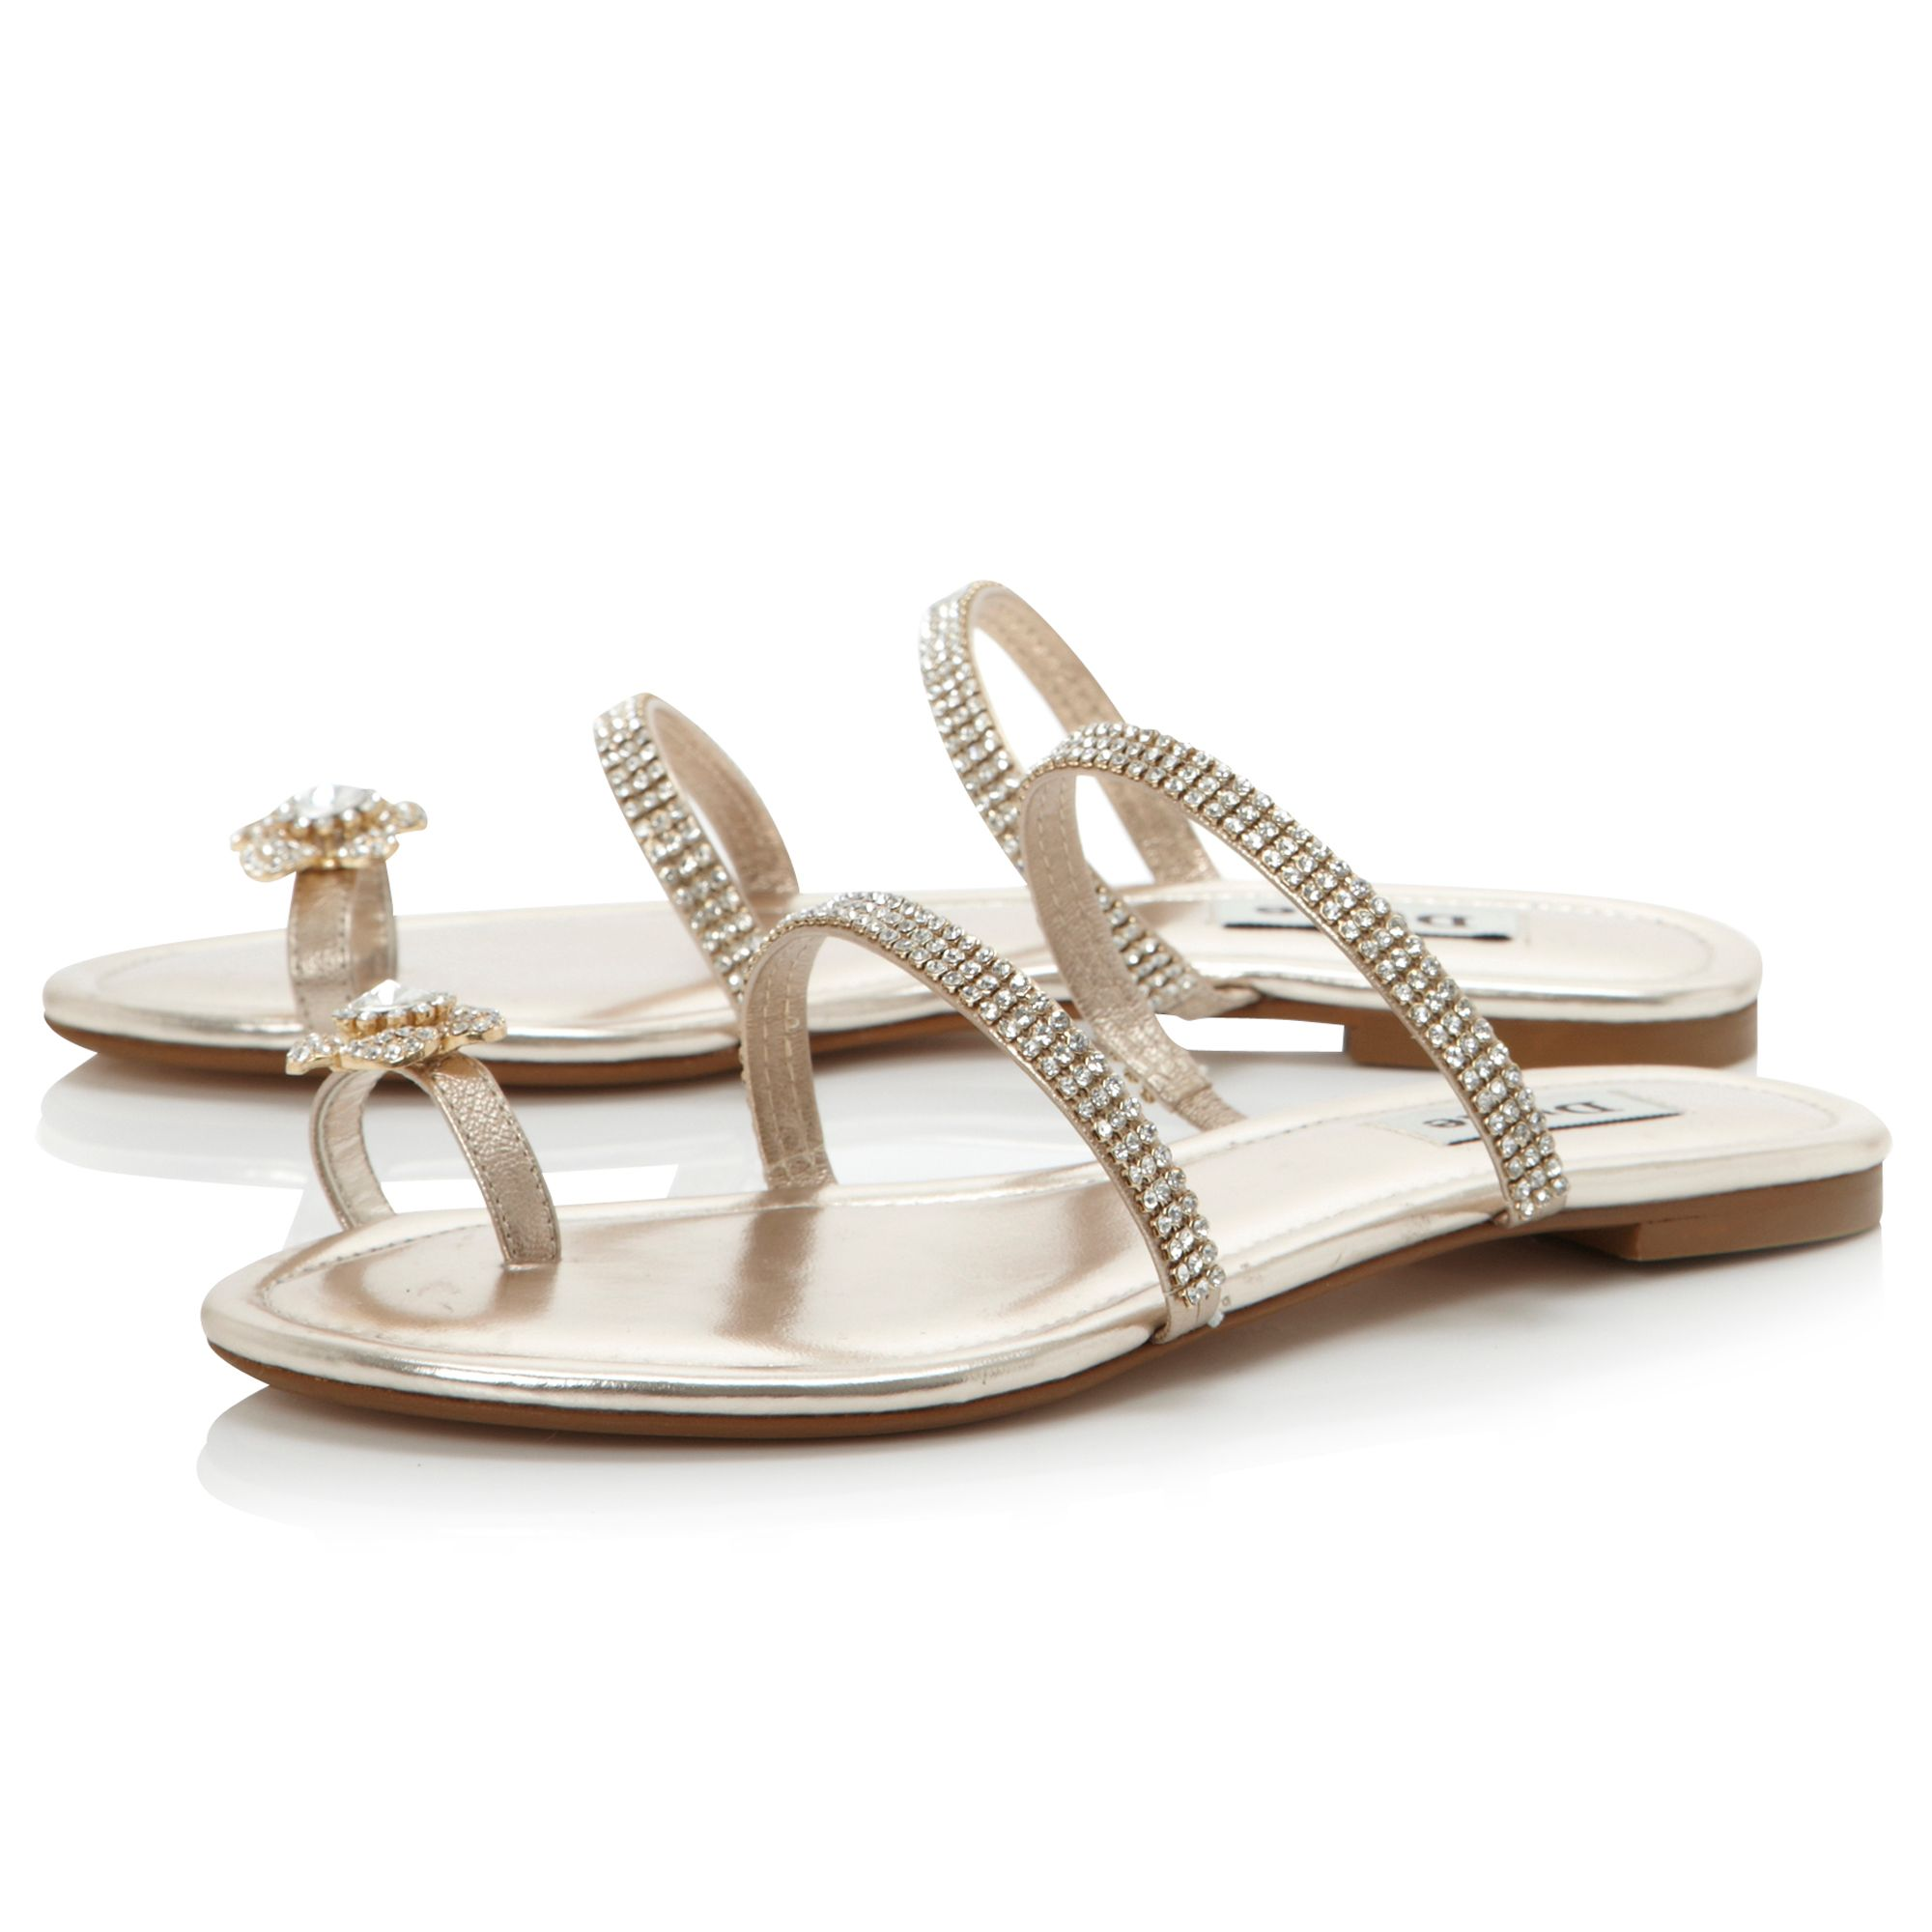 Kudos strappy diamante sandals